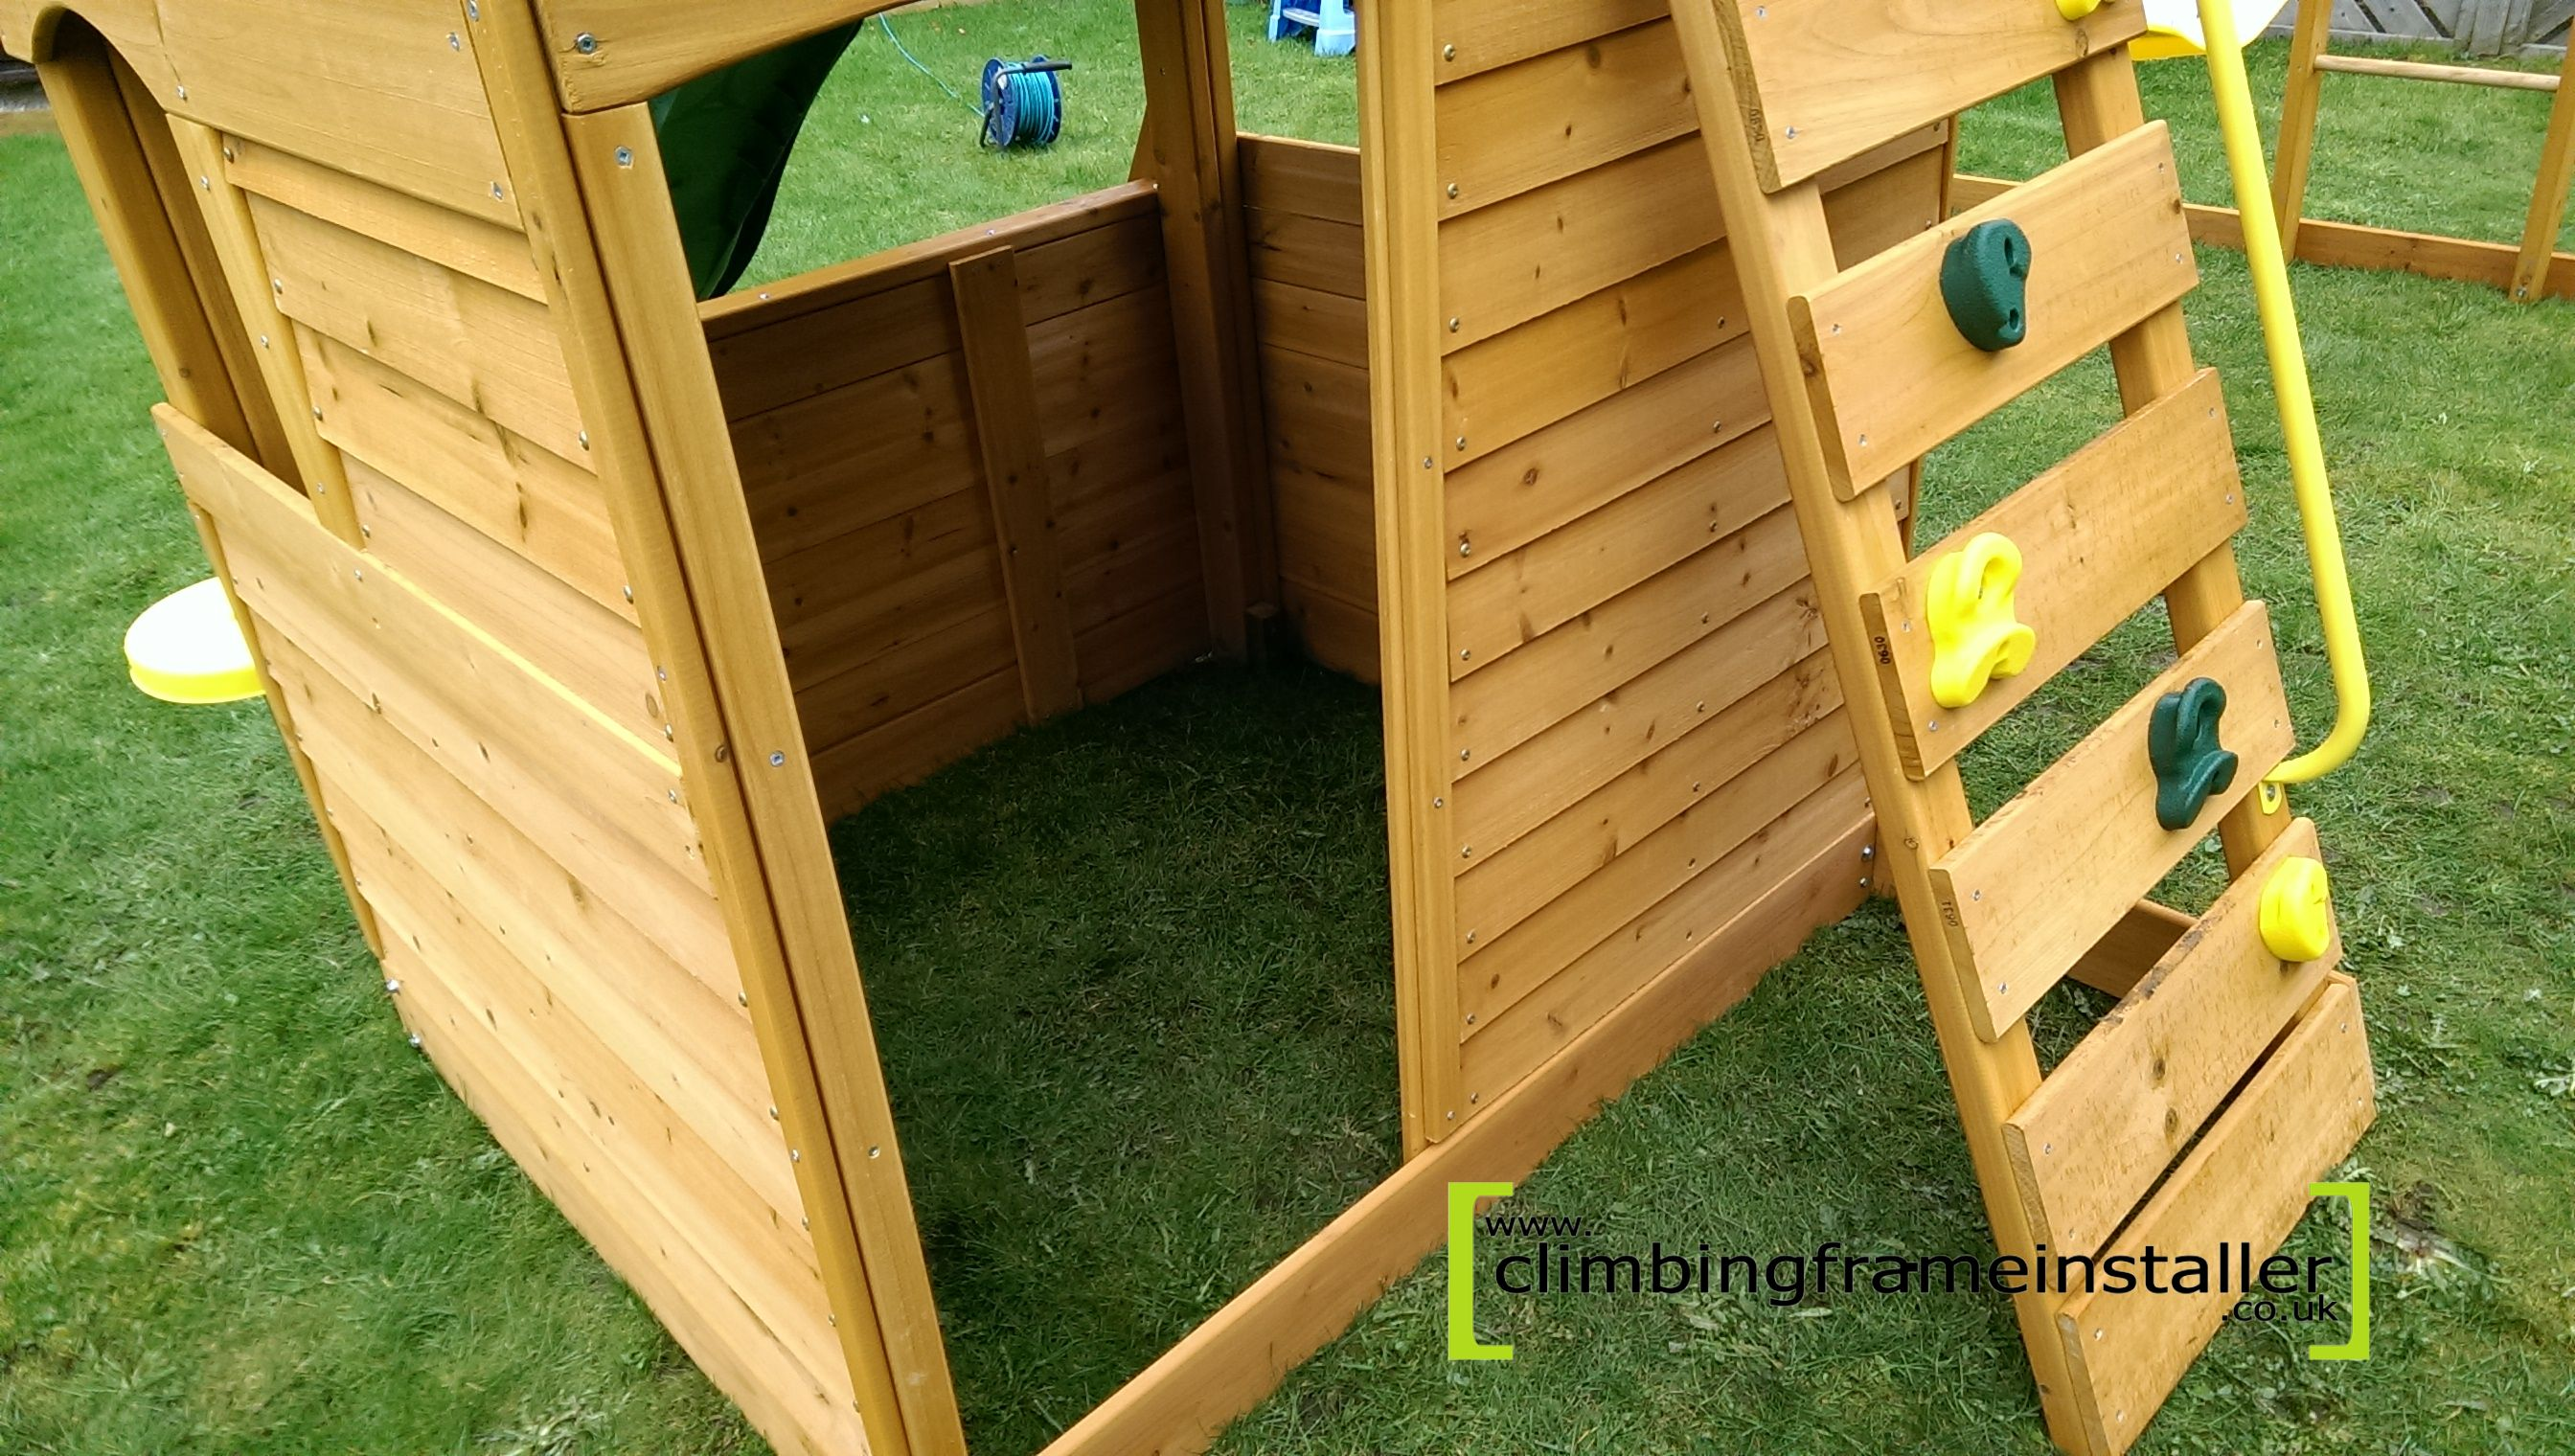 Selwood osborn climbing frame climbing frame installer for Swing set frame only